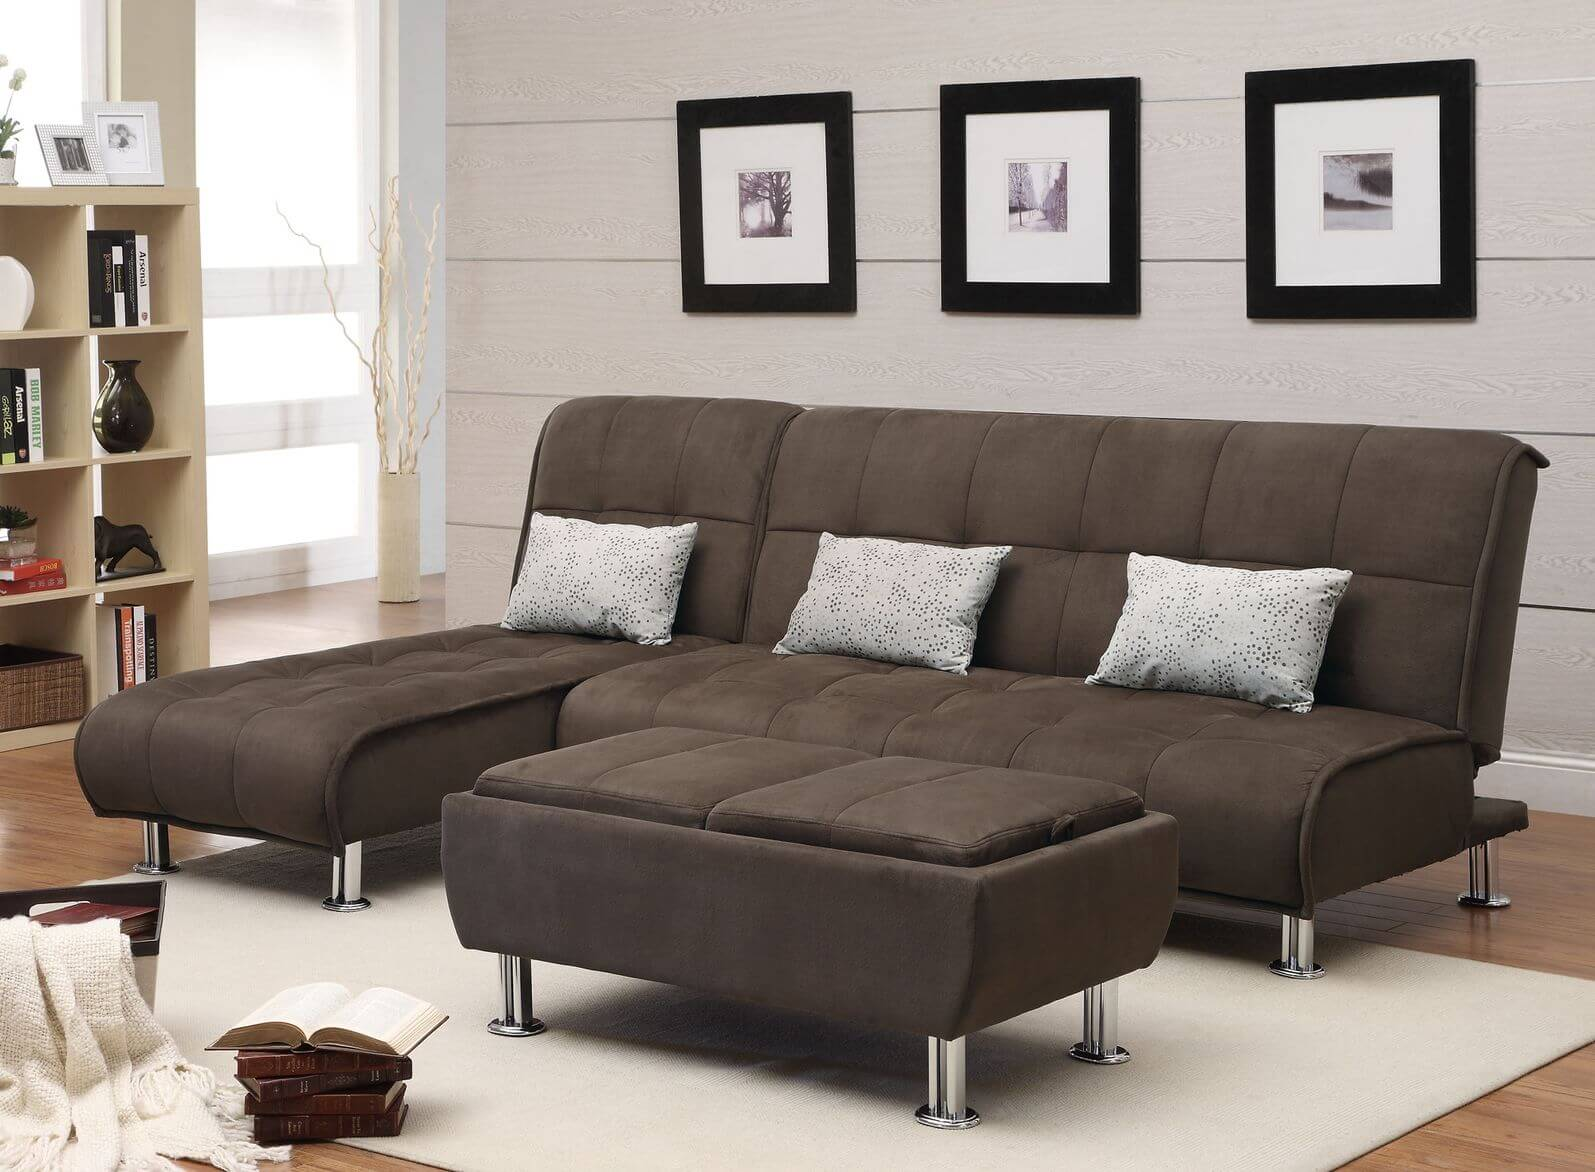 Coffee Tables For Sectional Sofas 50 beautiful living rooms with ottoman coffee tables